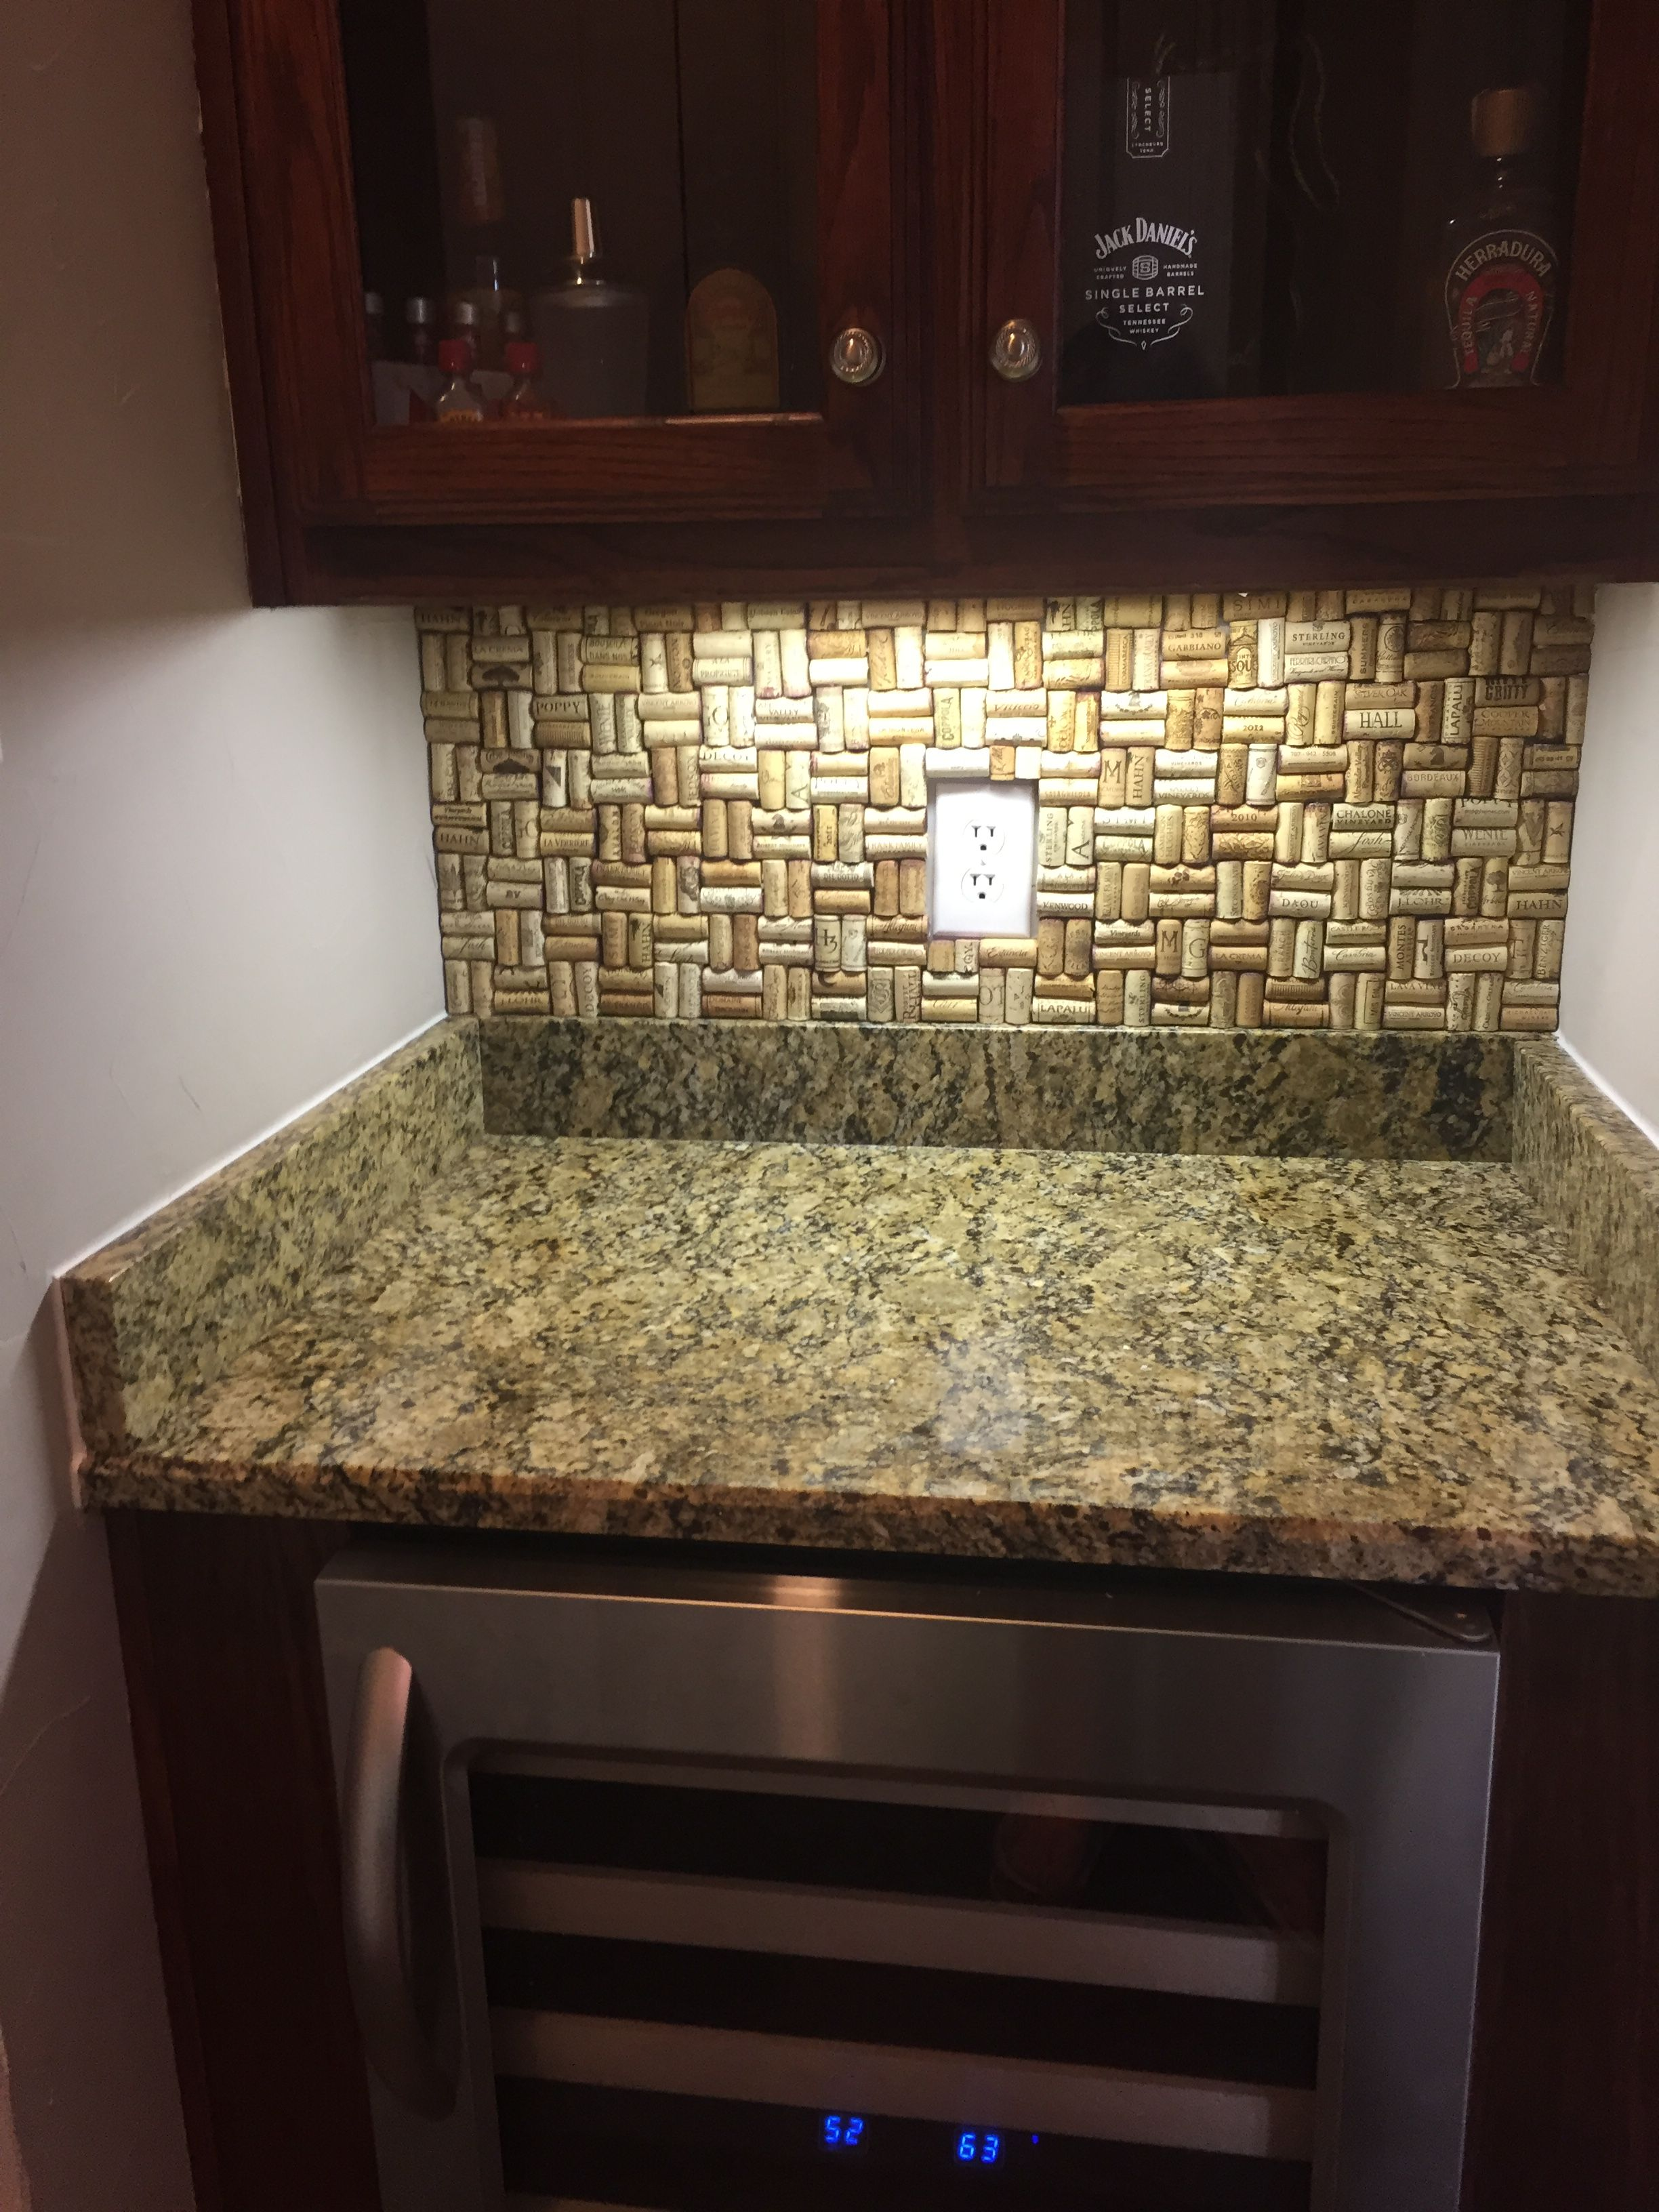 Pin by Kris Reedy on Wine Cork Backsplash (With images